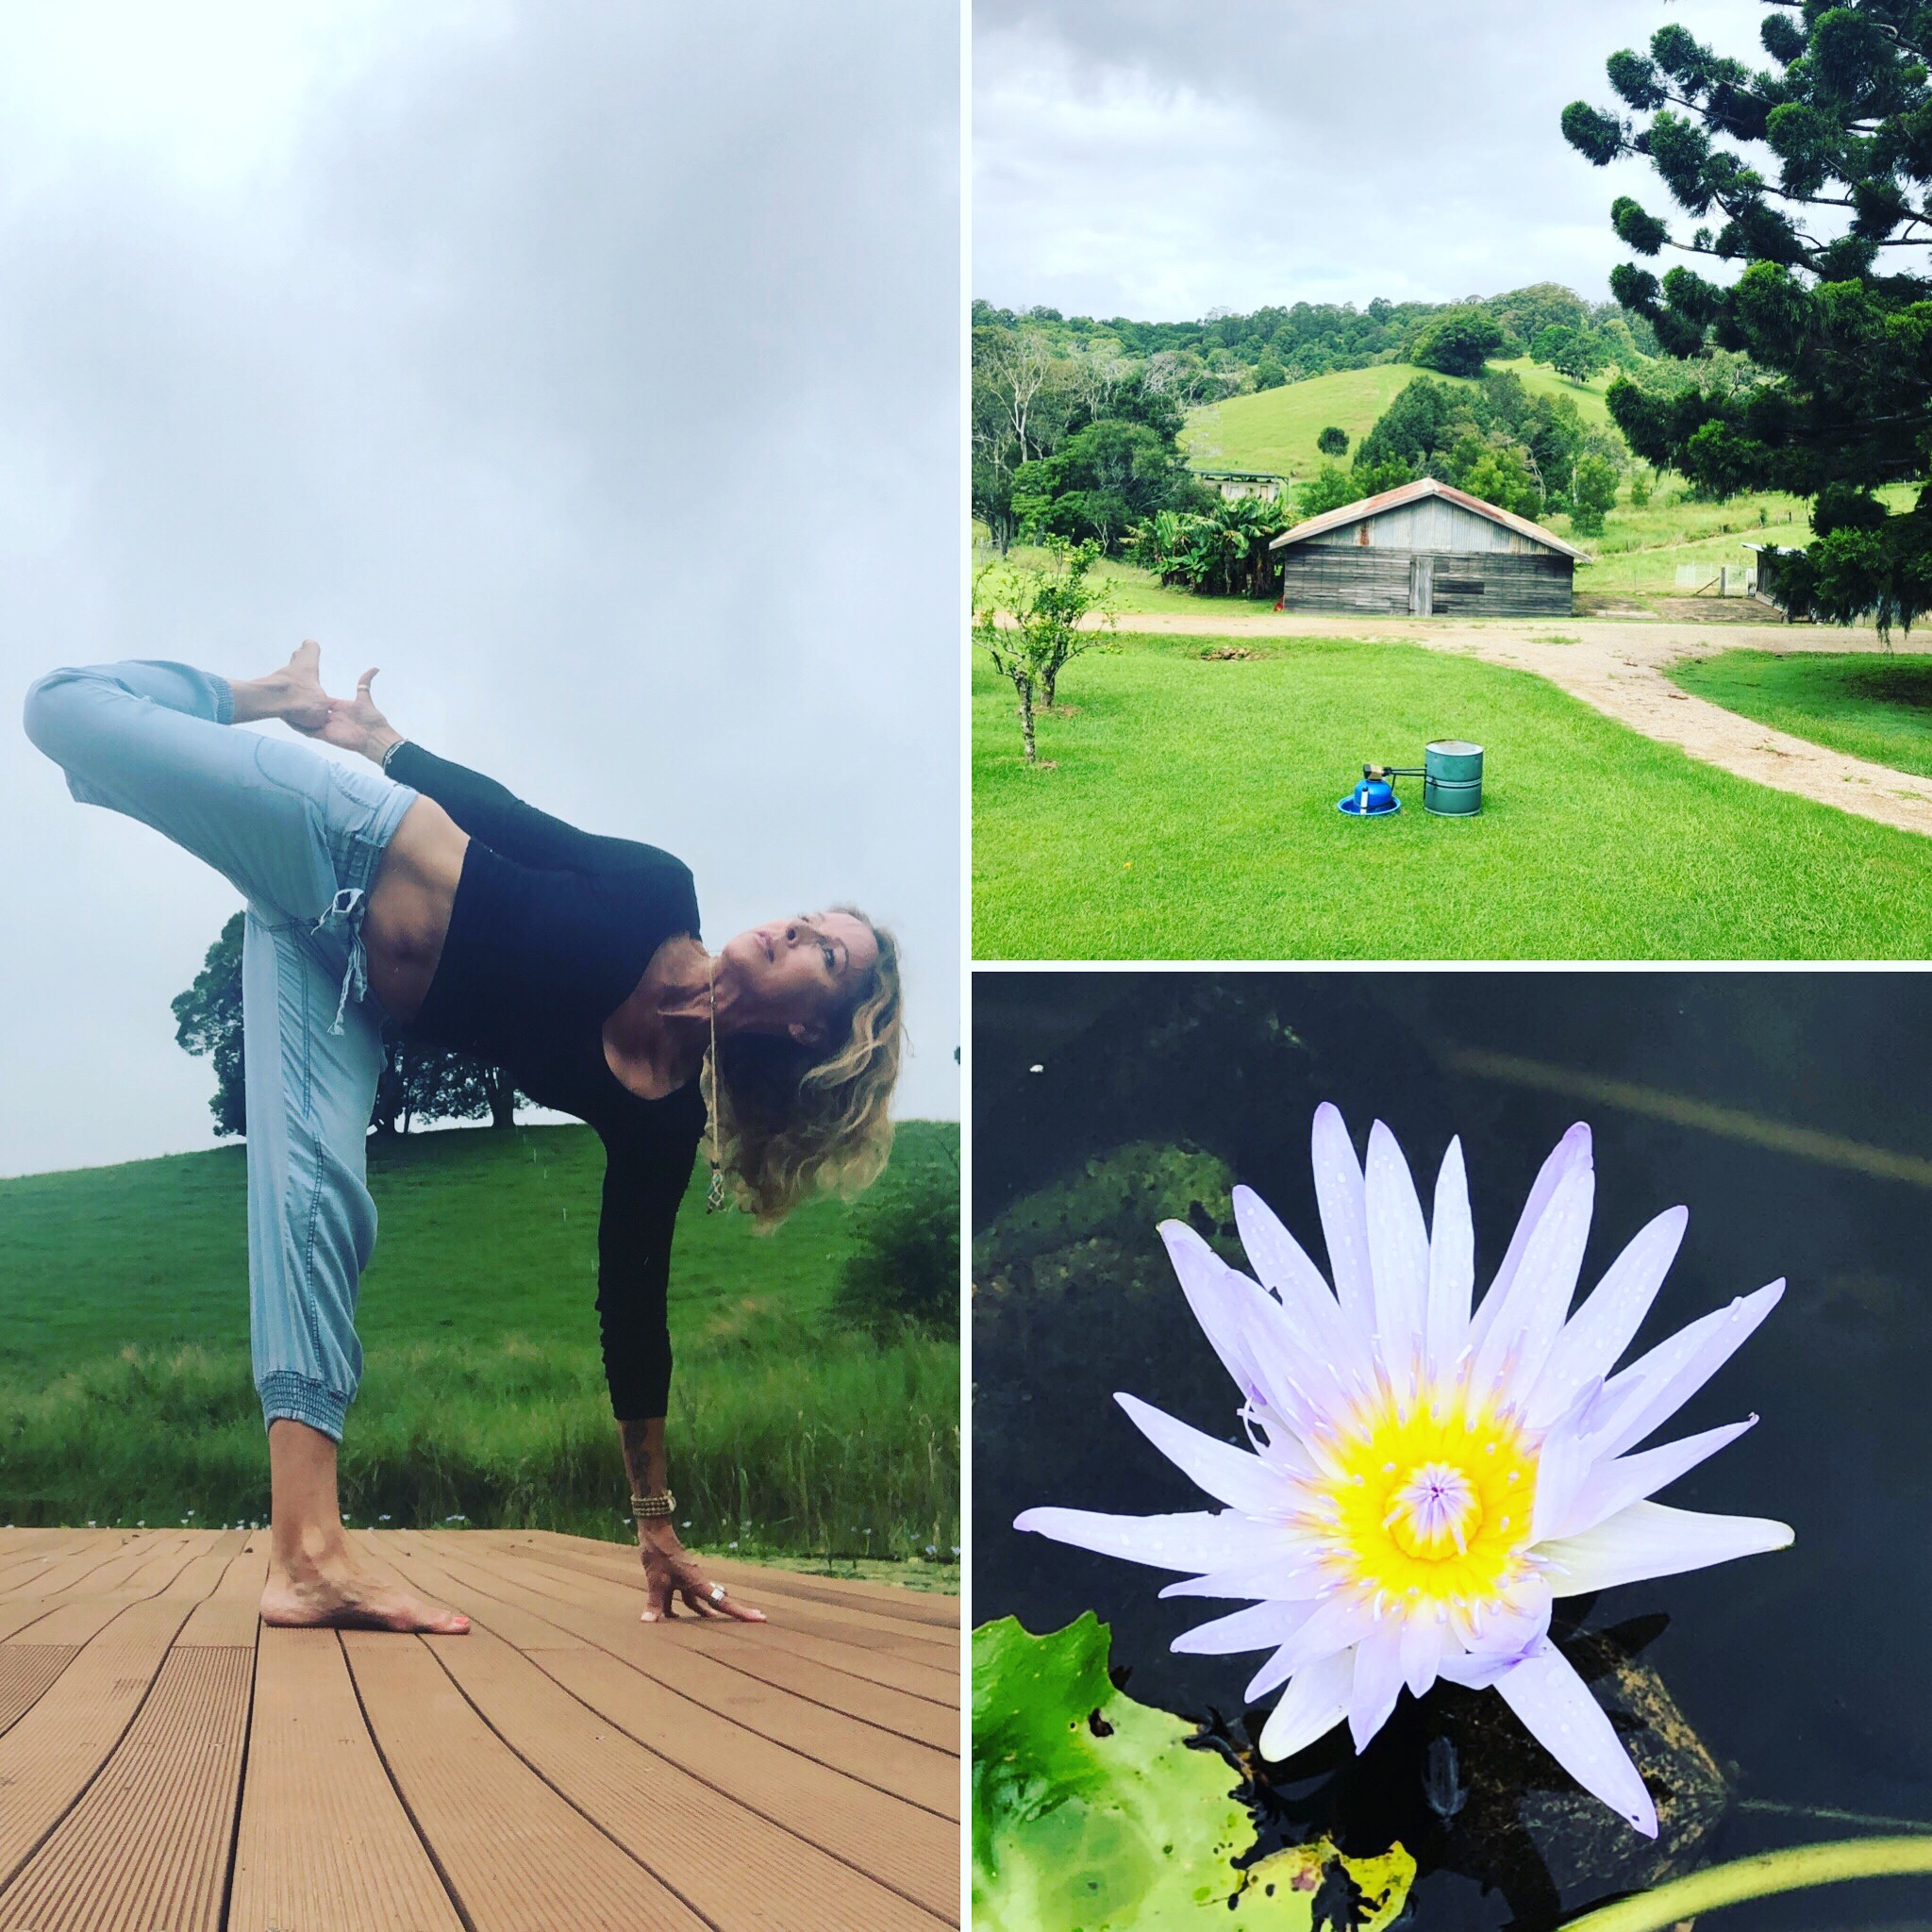 Retreats Coming - Spring Weekend Retreat October 2019 - 2 nightsAutumn Retreat March 2020 - 3 nights - Byron Bay